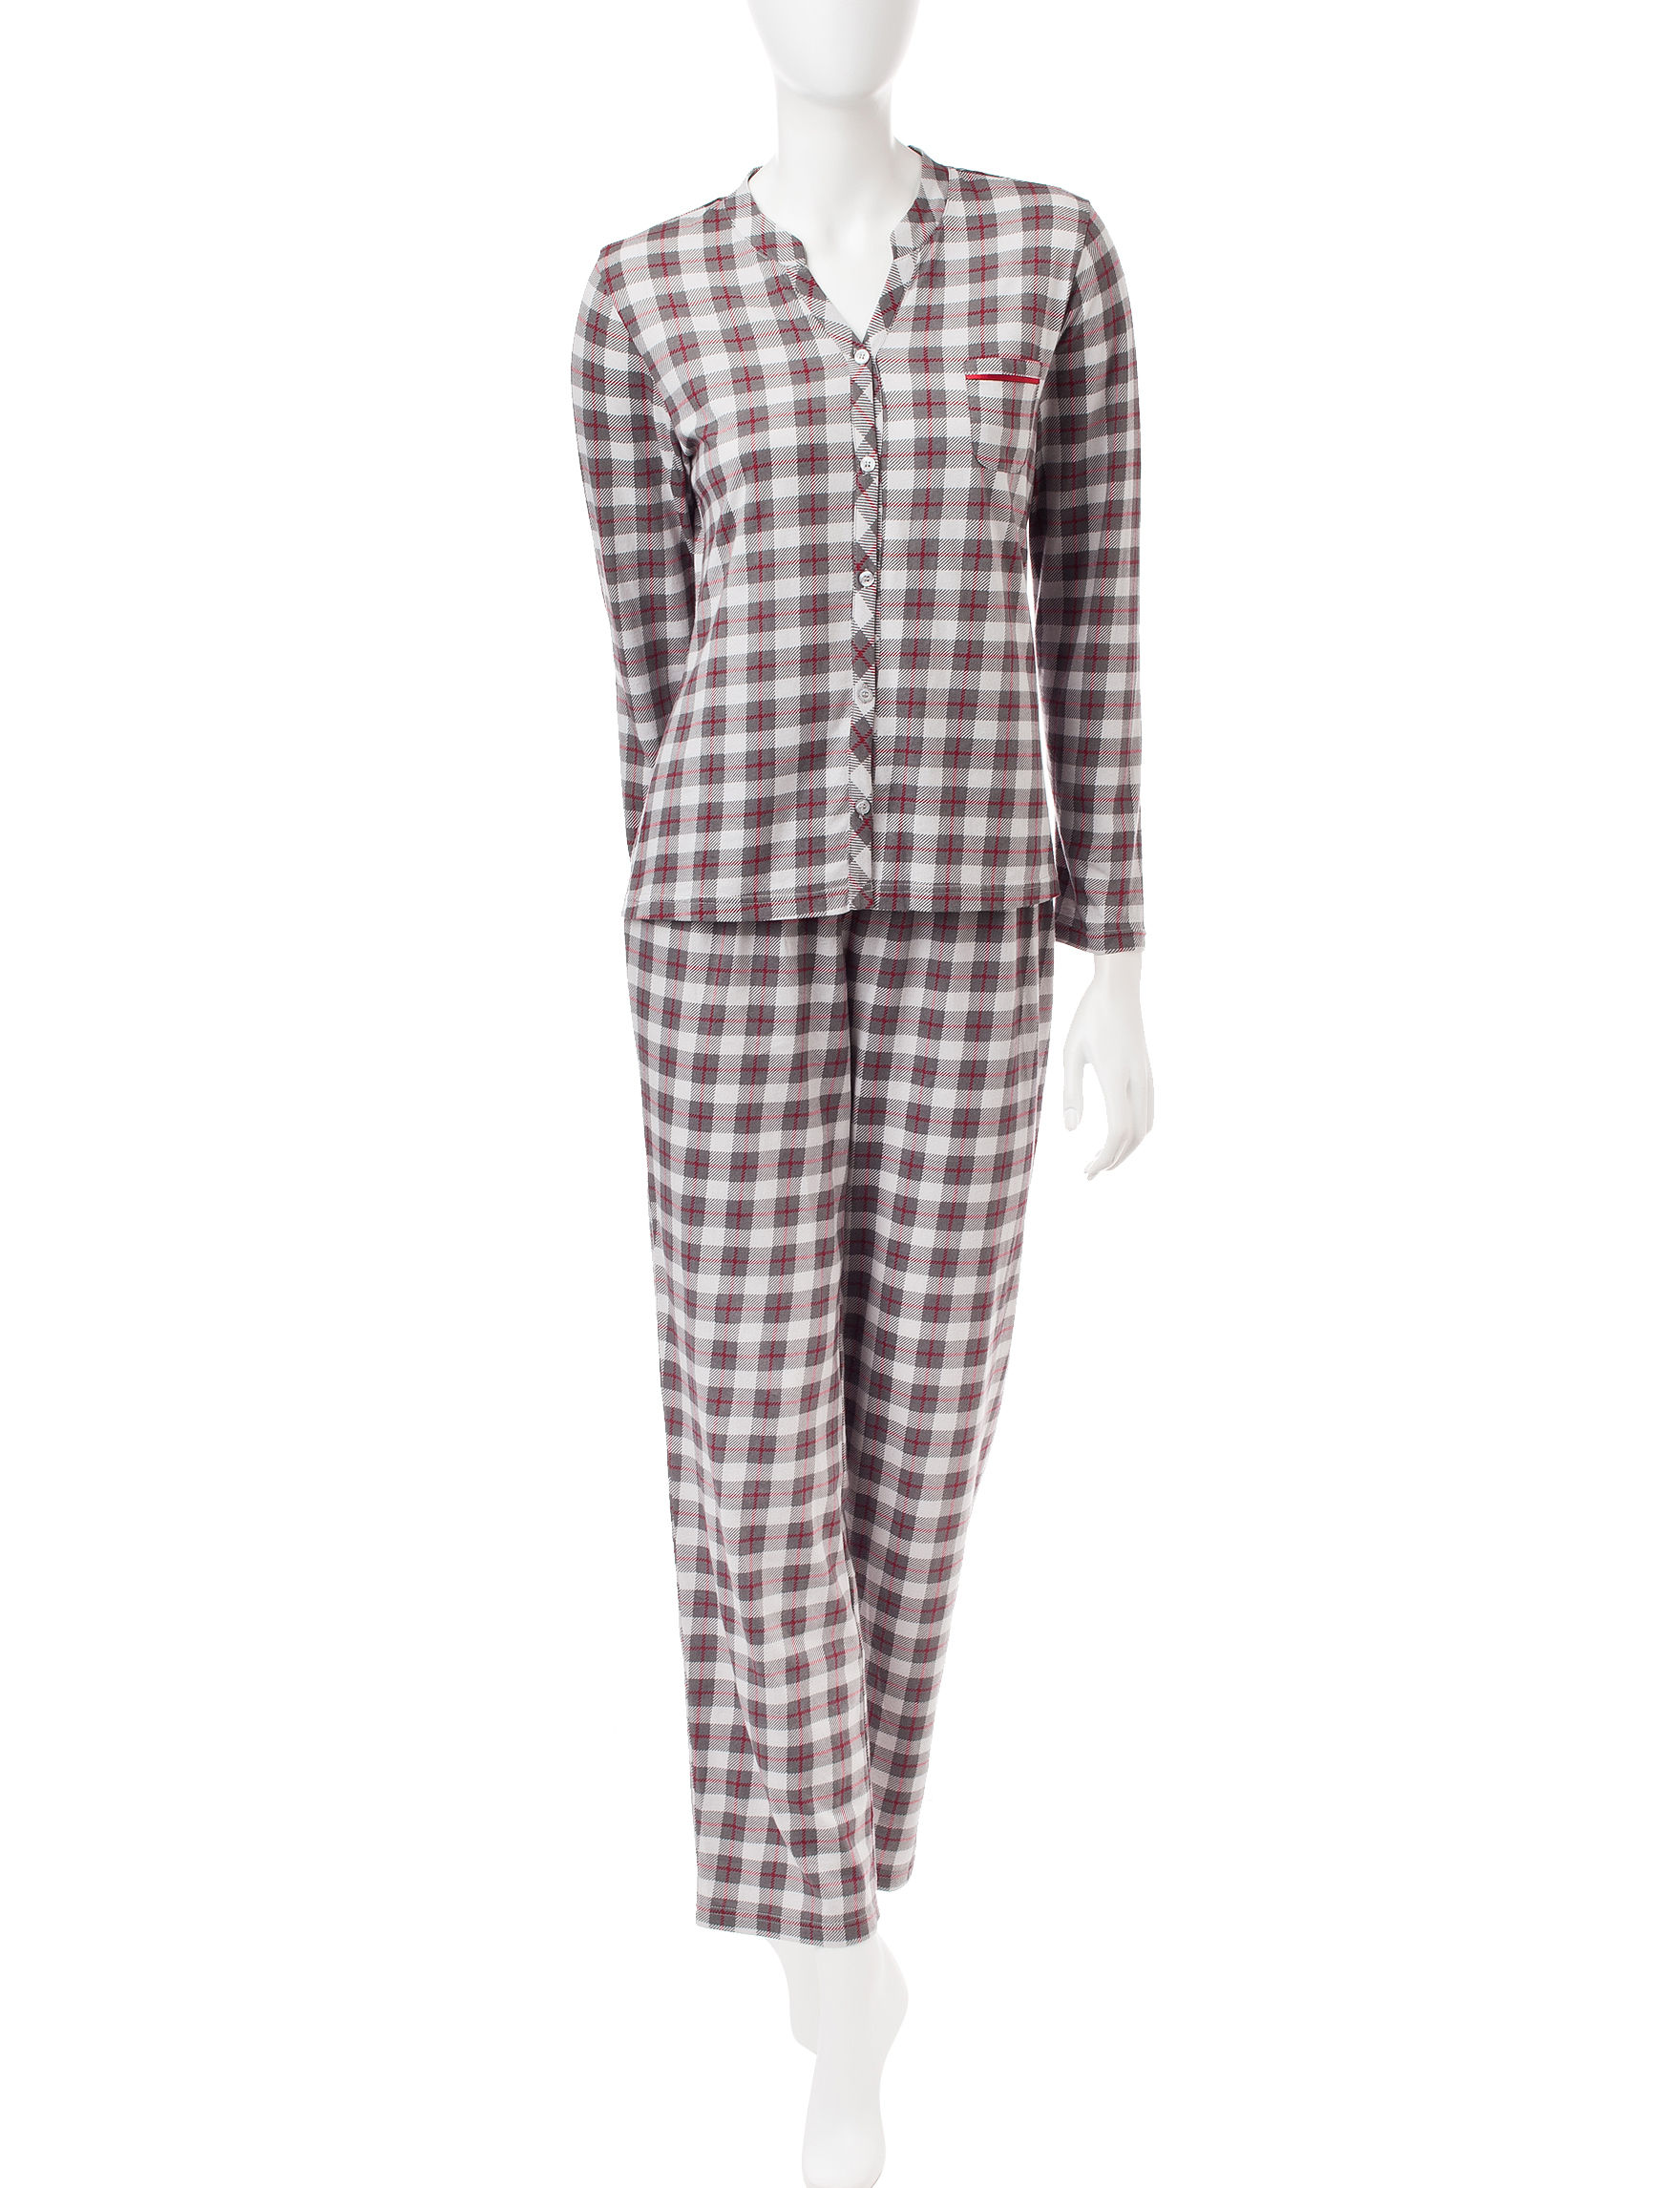 Hanes Grey Plaid Pajama Sets